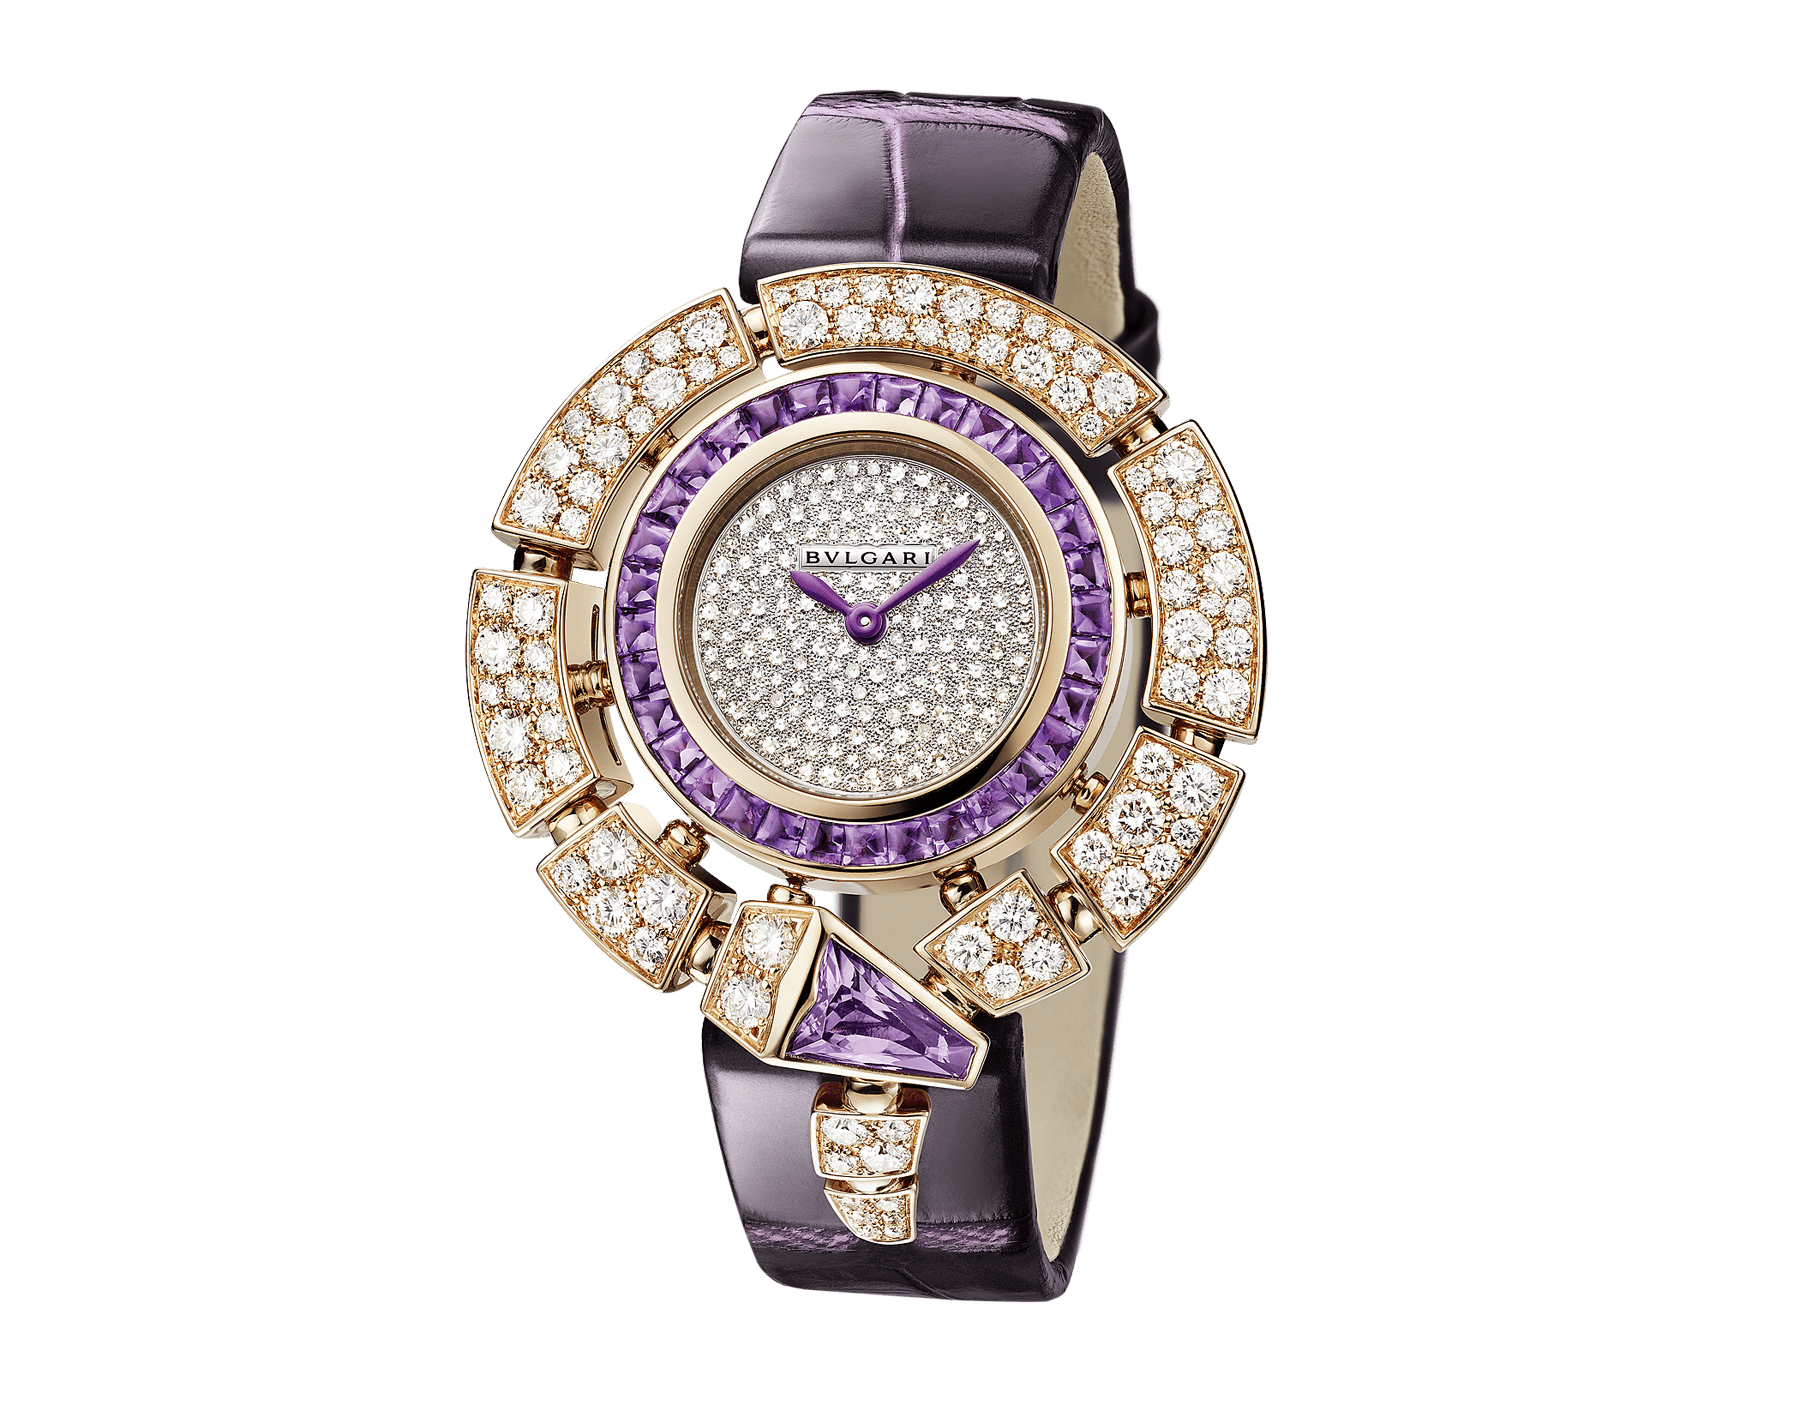 Serpenti Incantati watch with 18 kt rose gold case set with round brilliant-cut diamonds and a fancy-shaped amethyst, 18 kt rose gold bezel set with buff-cut amethysts, snow pavé dial and purple alligator bracelet 103125 image 2